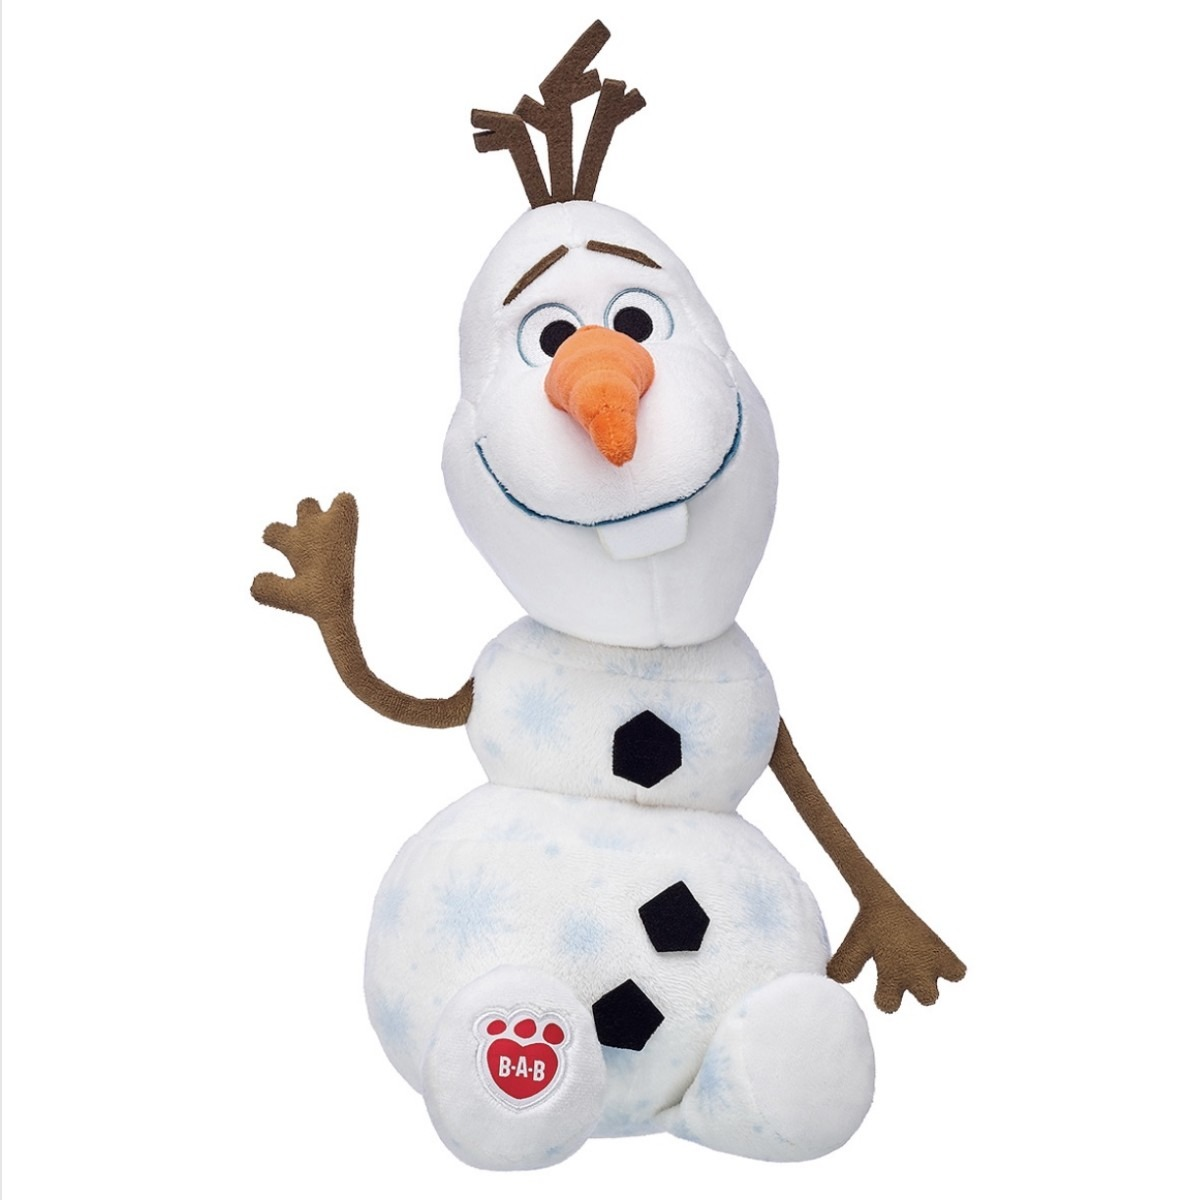 New Frozen 2 Collection at Build-A-Bear Workshop 4